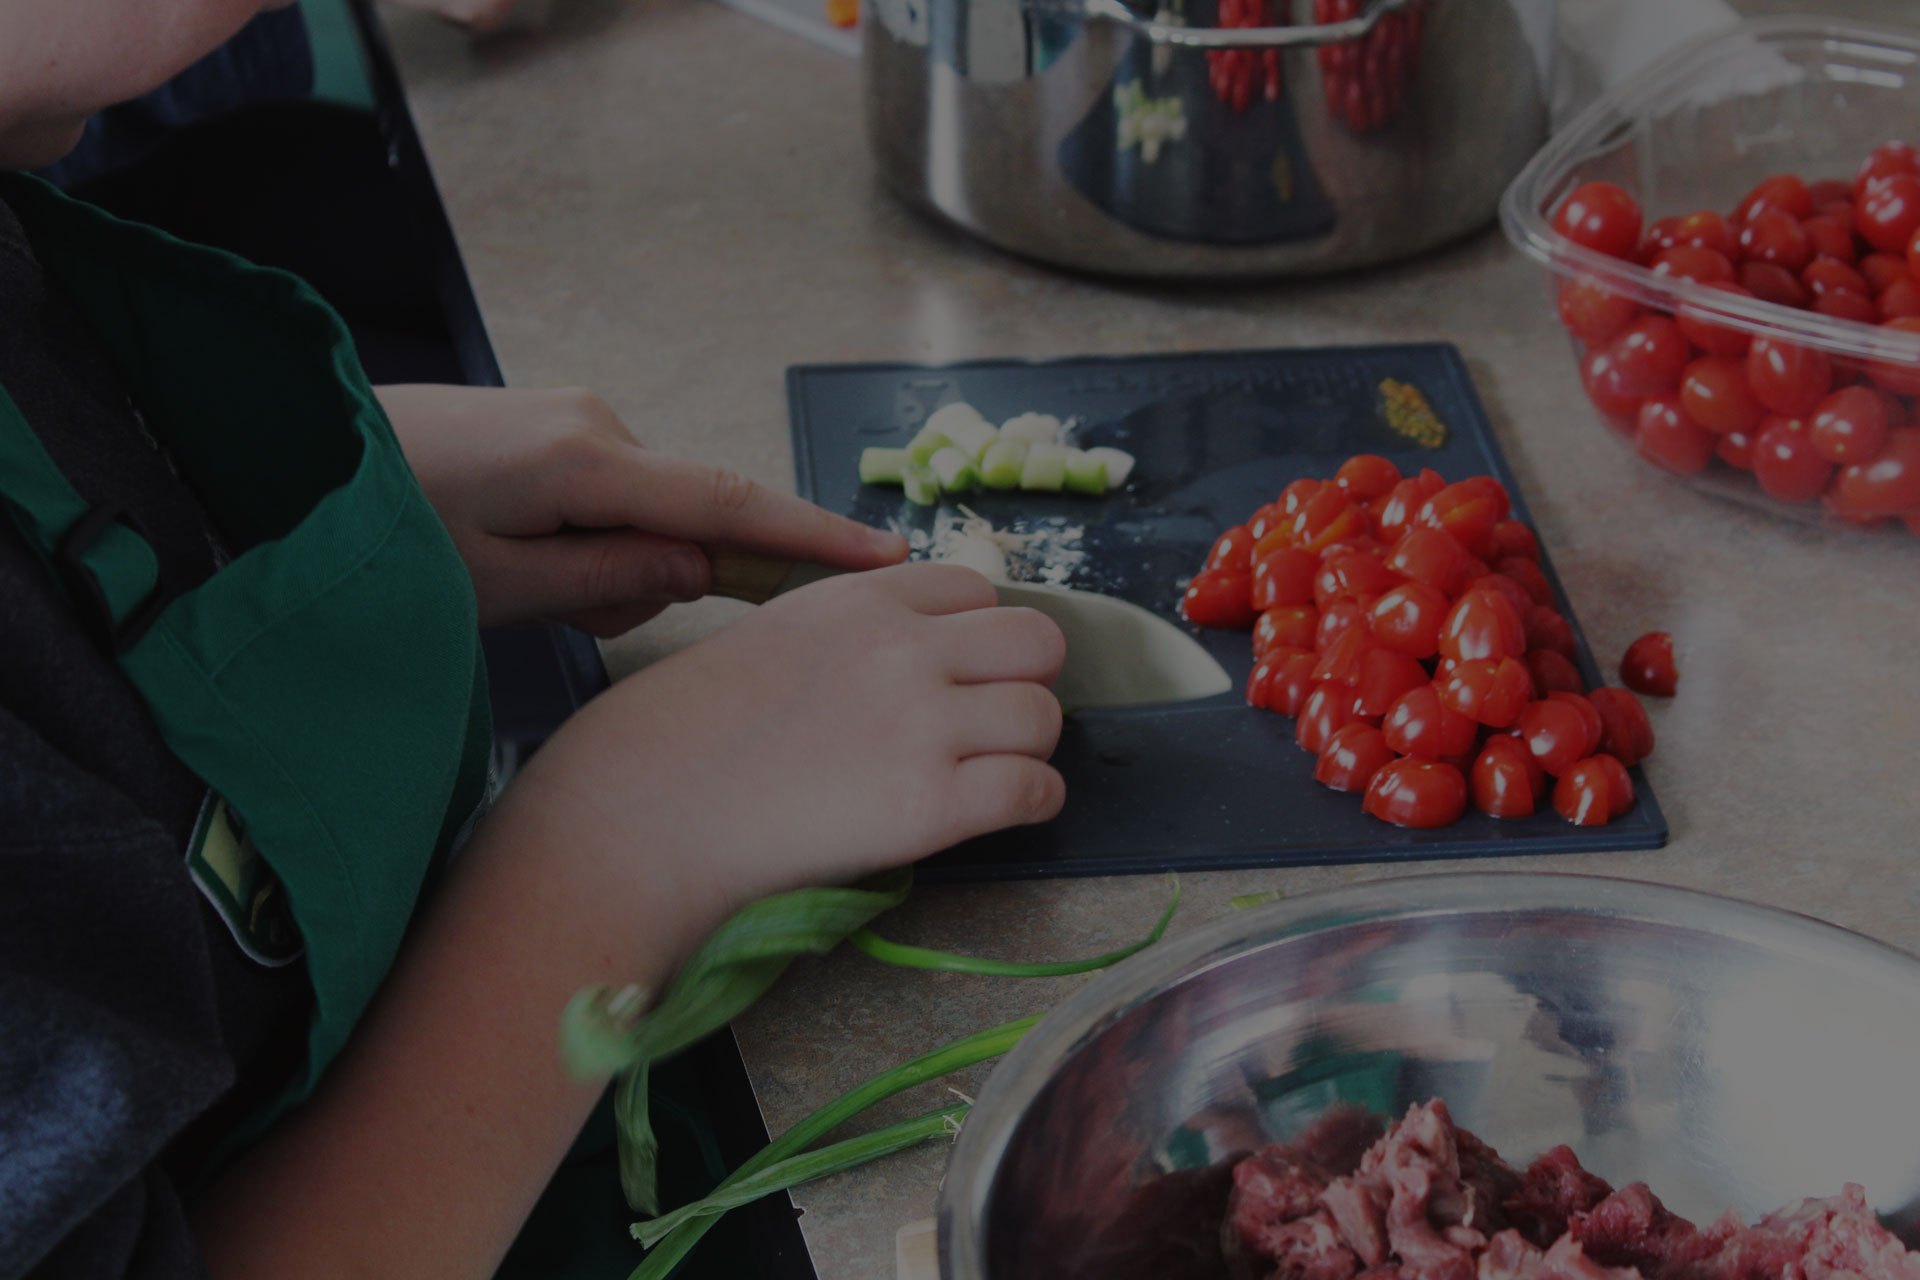 Close up of a child chopping tomatoes and garlic. They wear a green apron. A black filter darkens the image.